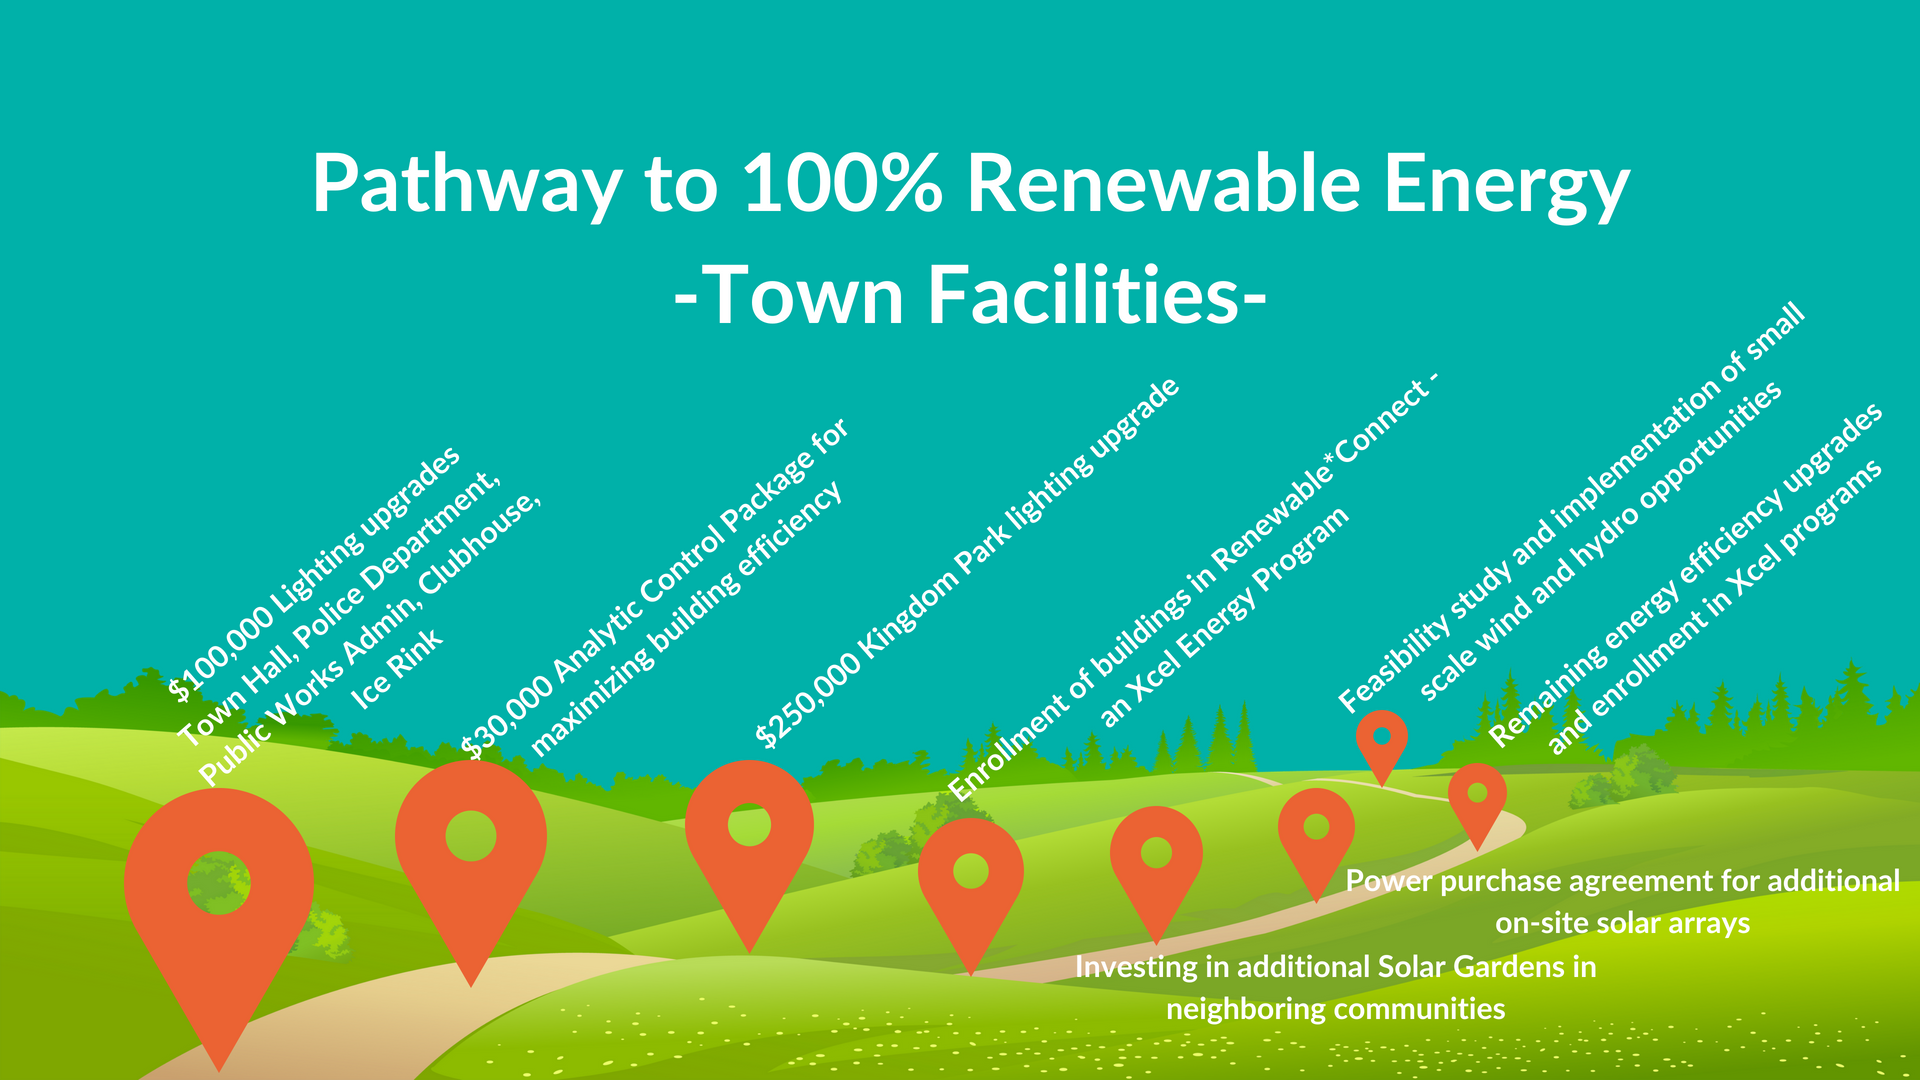 Roadmap describing pathway to achieving 100% renewable energy for town facilities